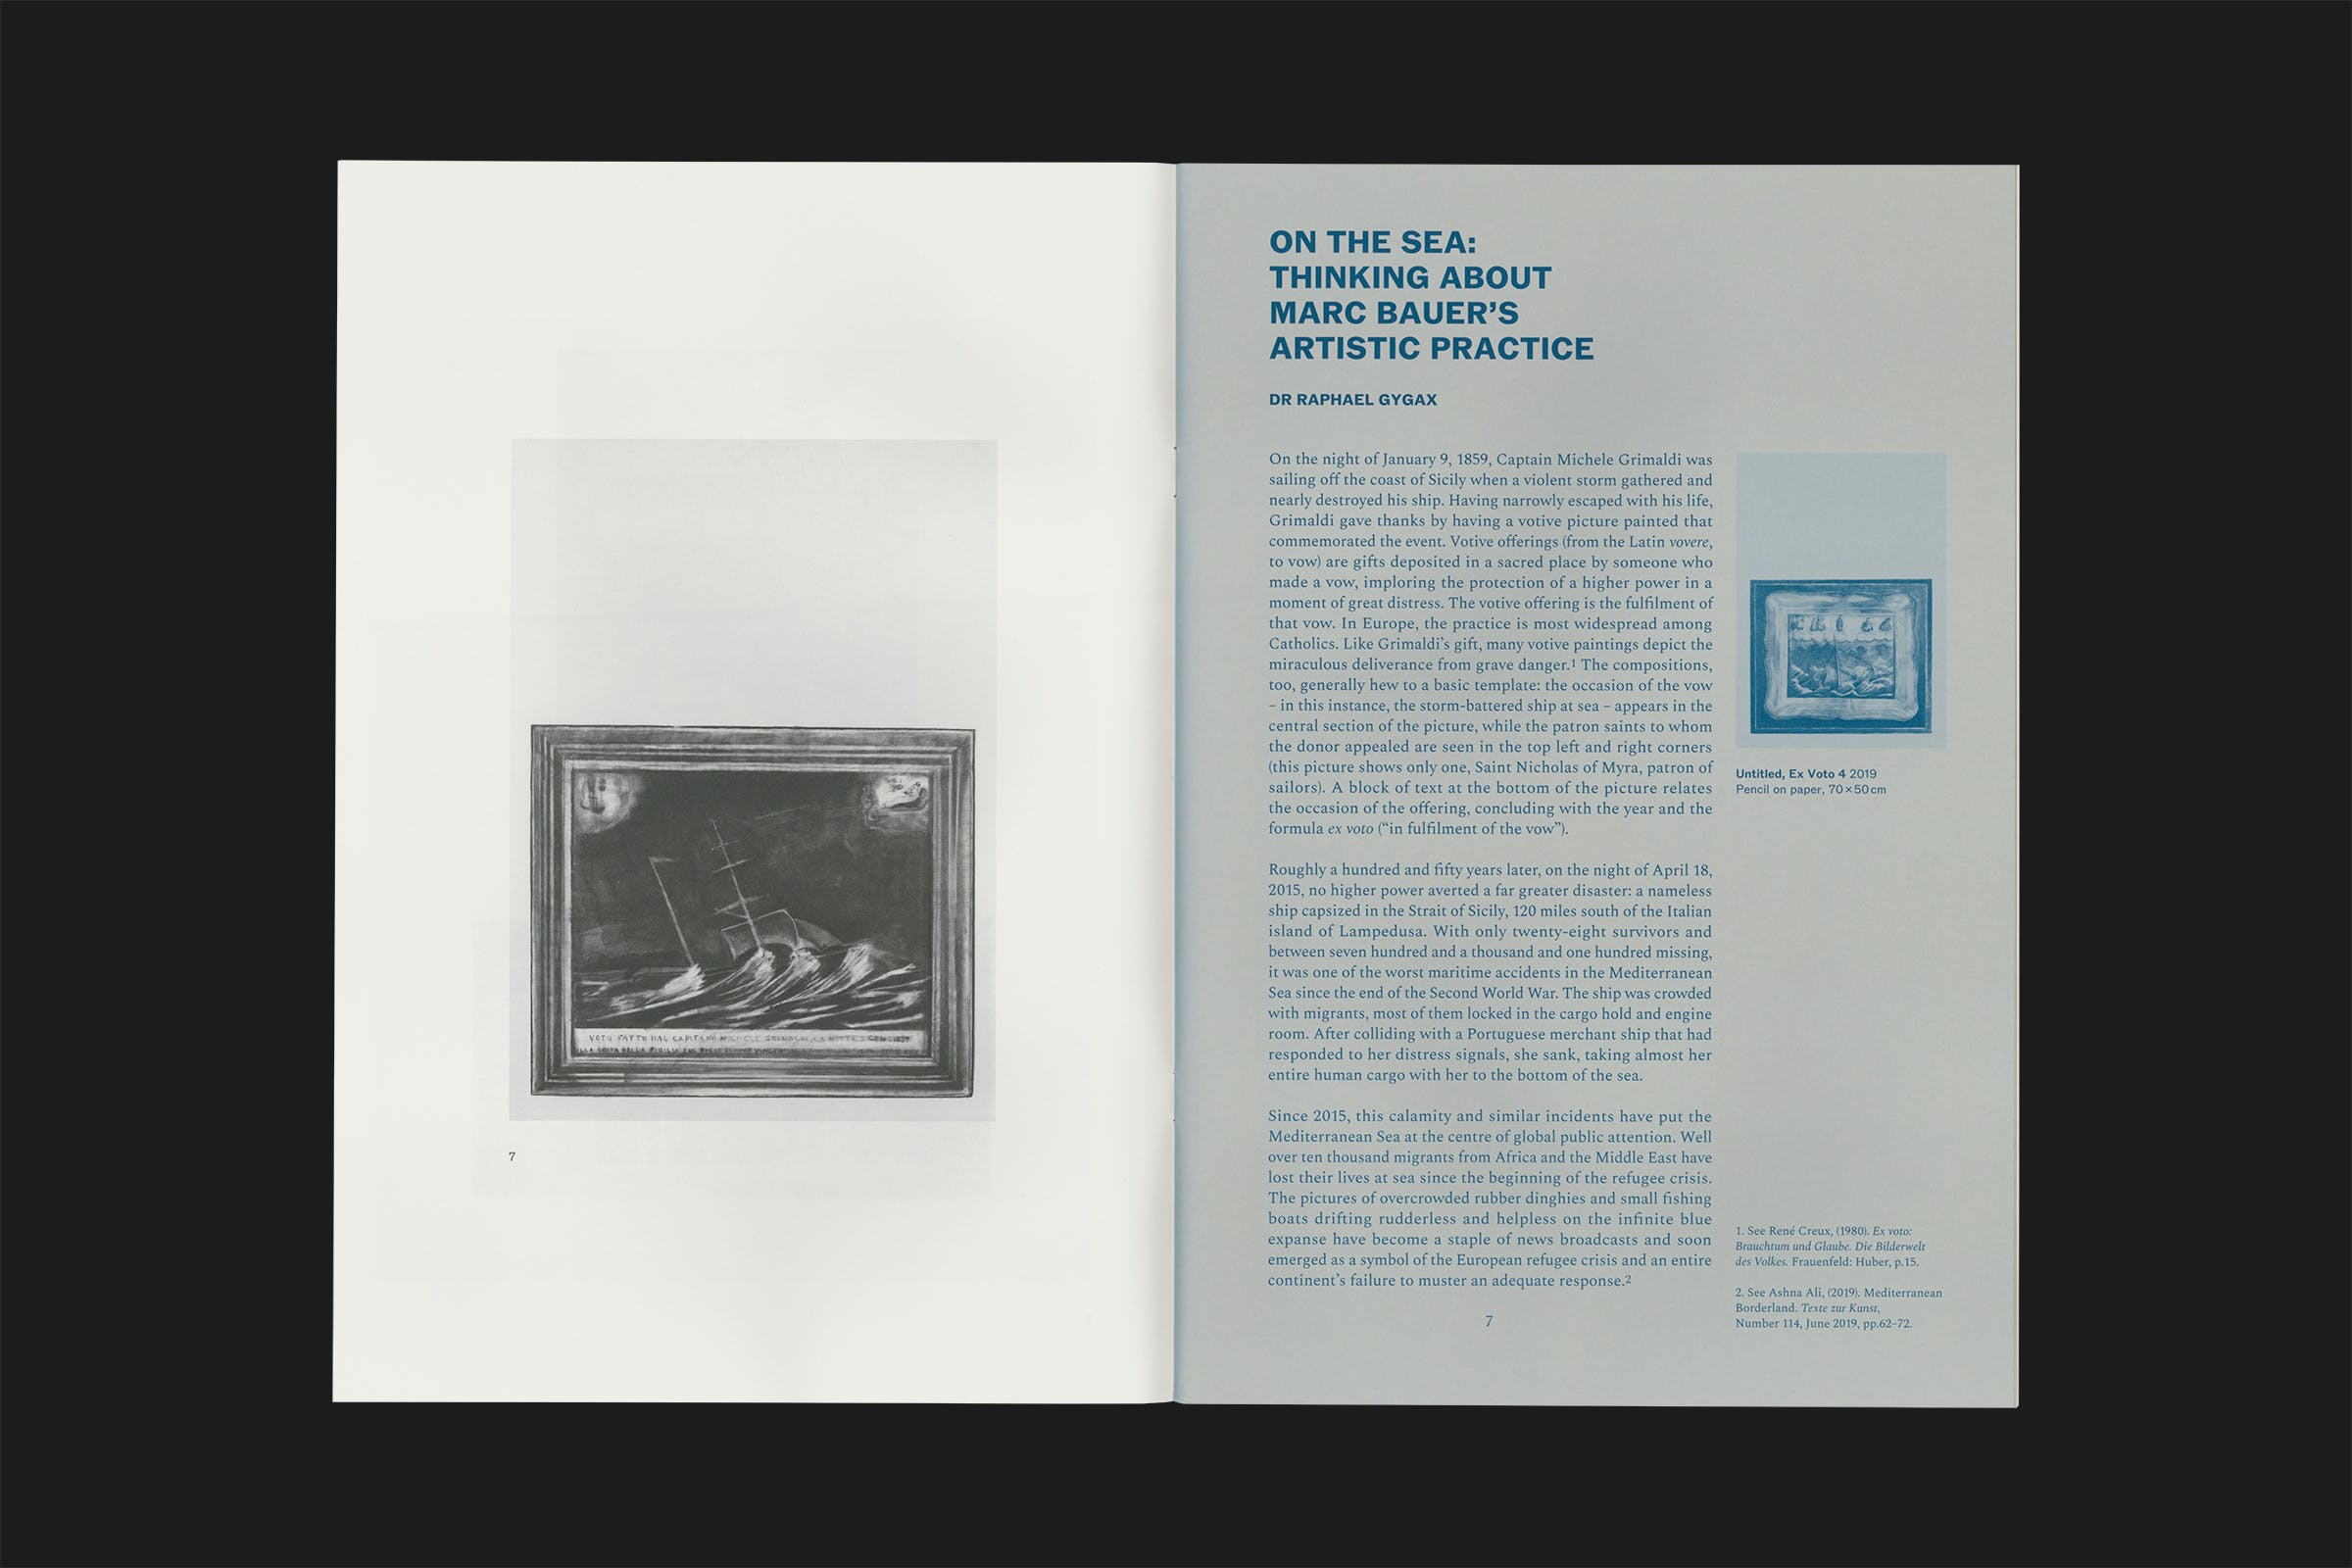 Drawing Room, London, Marc Bauer, Mal-Être/Performance, Publication, Graphic Design by Wolfe Hall